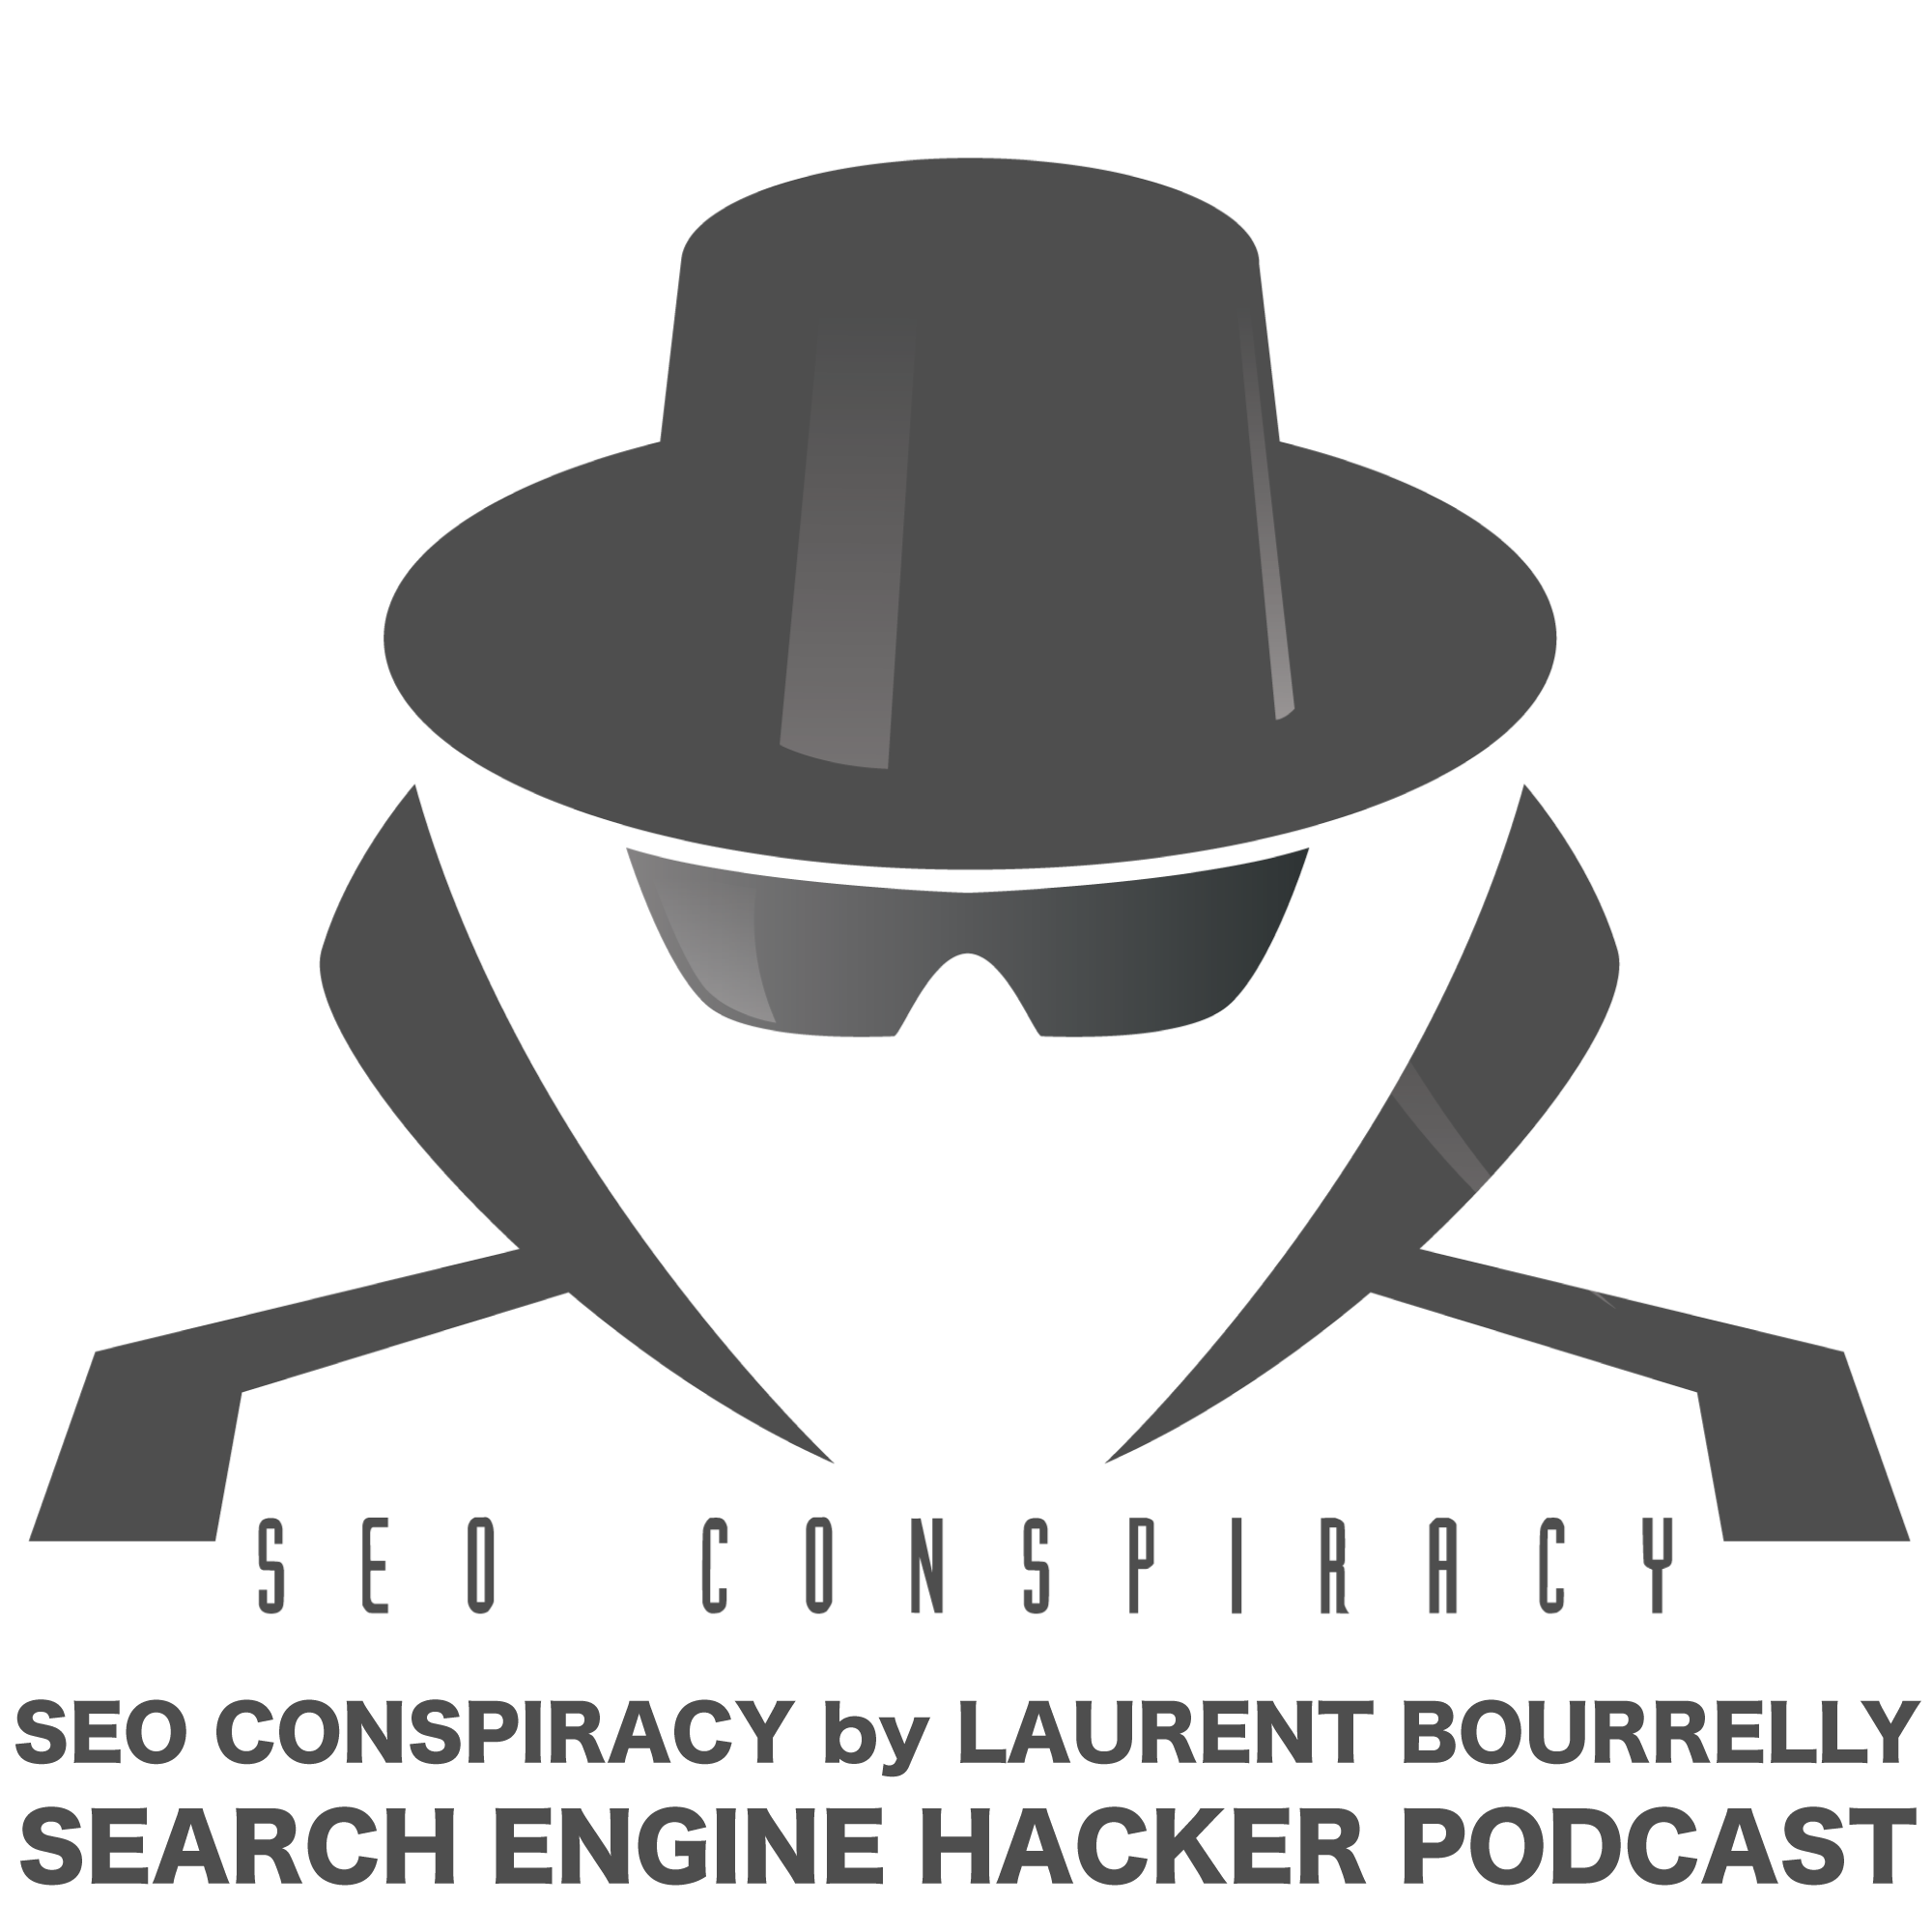 What is the difference between a Black Hat SEO and a Search Engine Hacker?